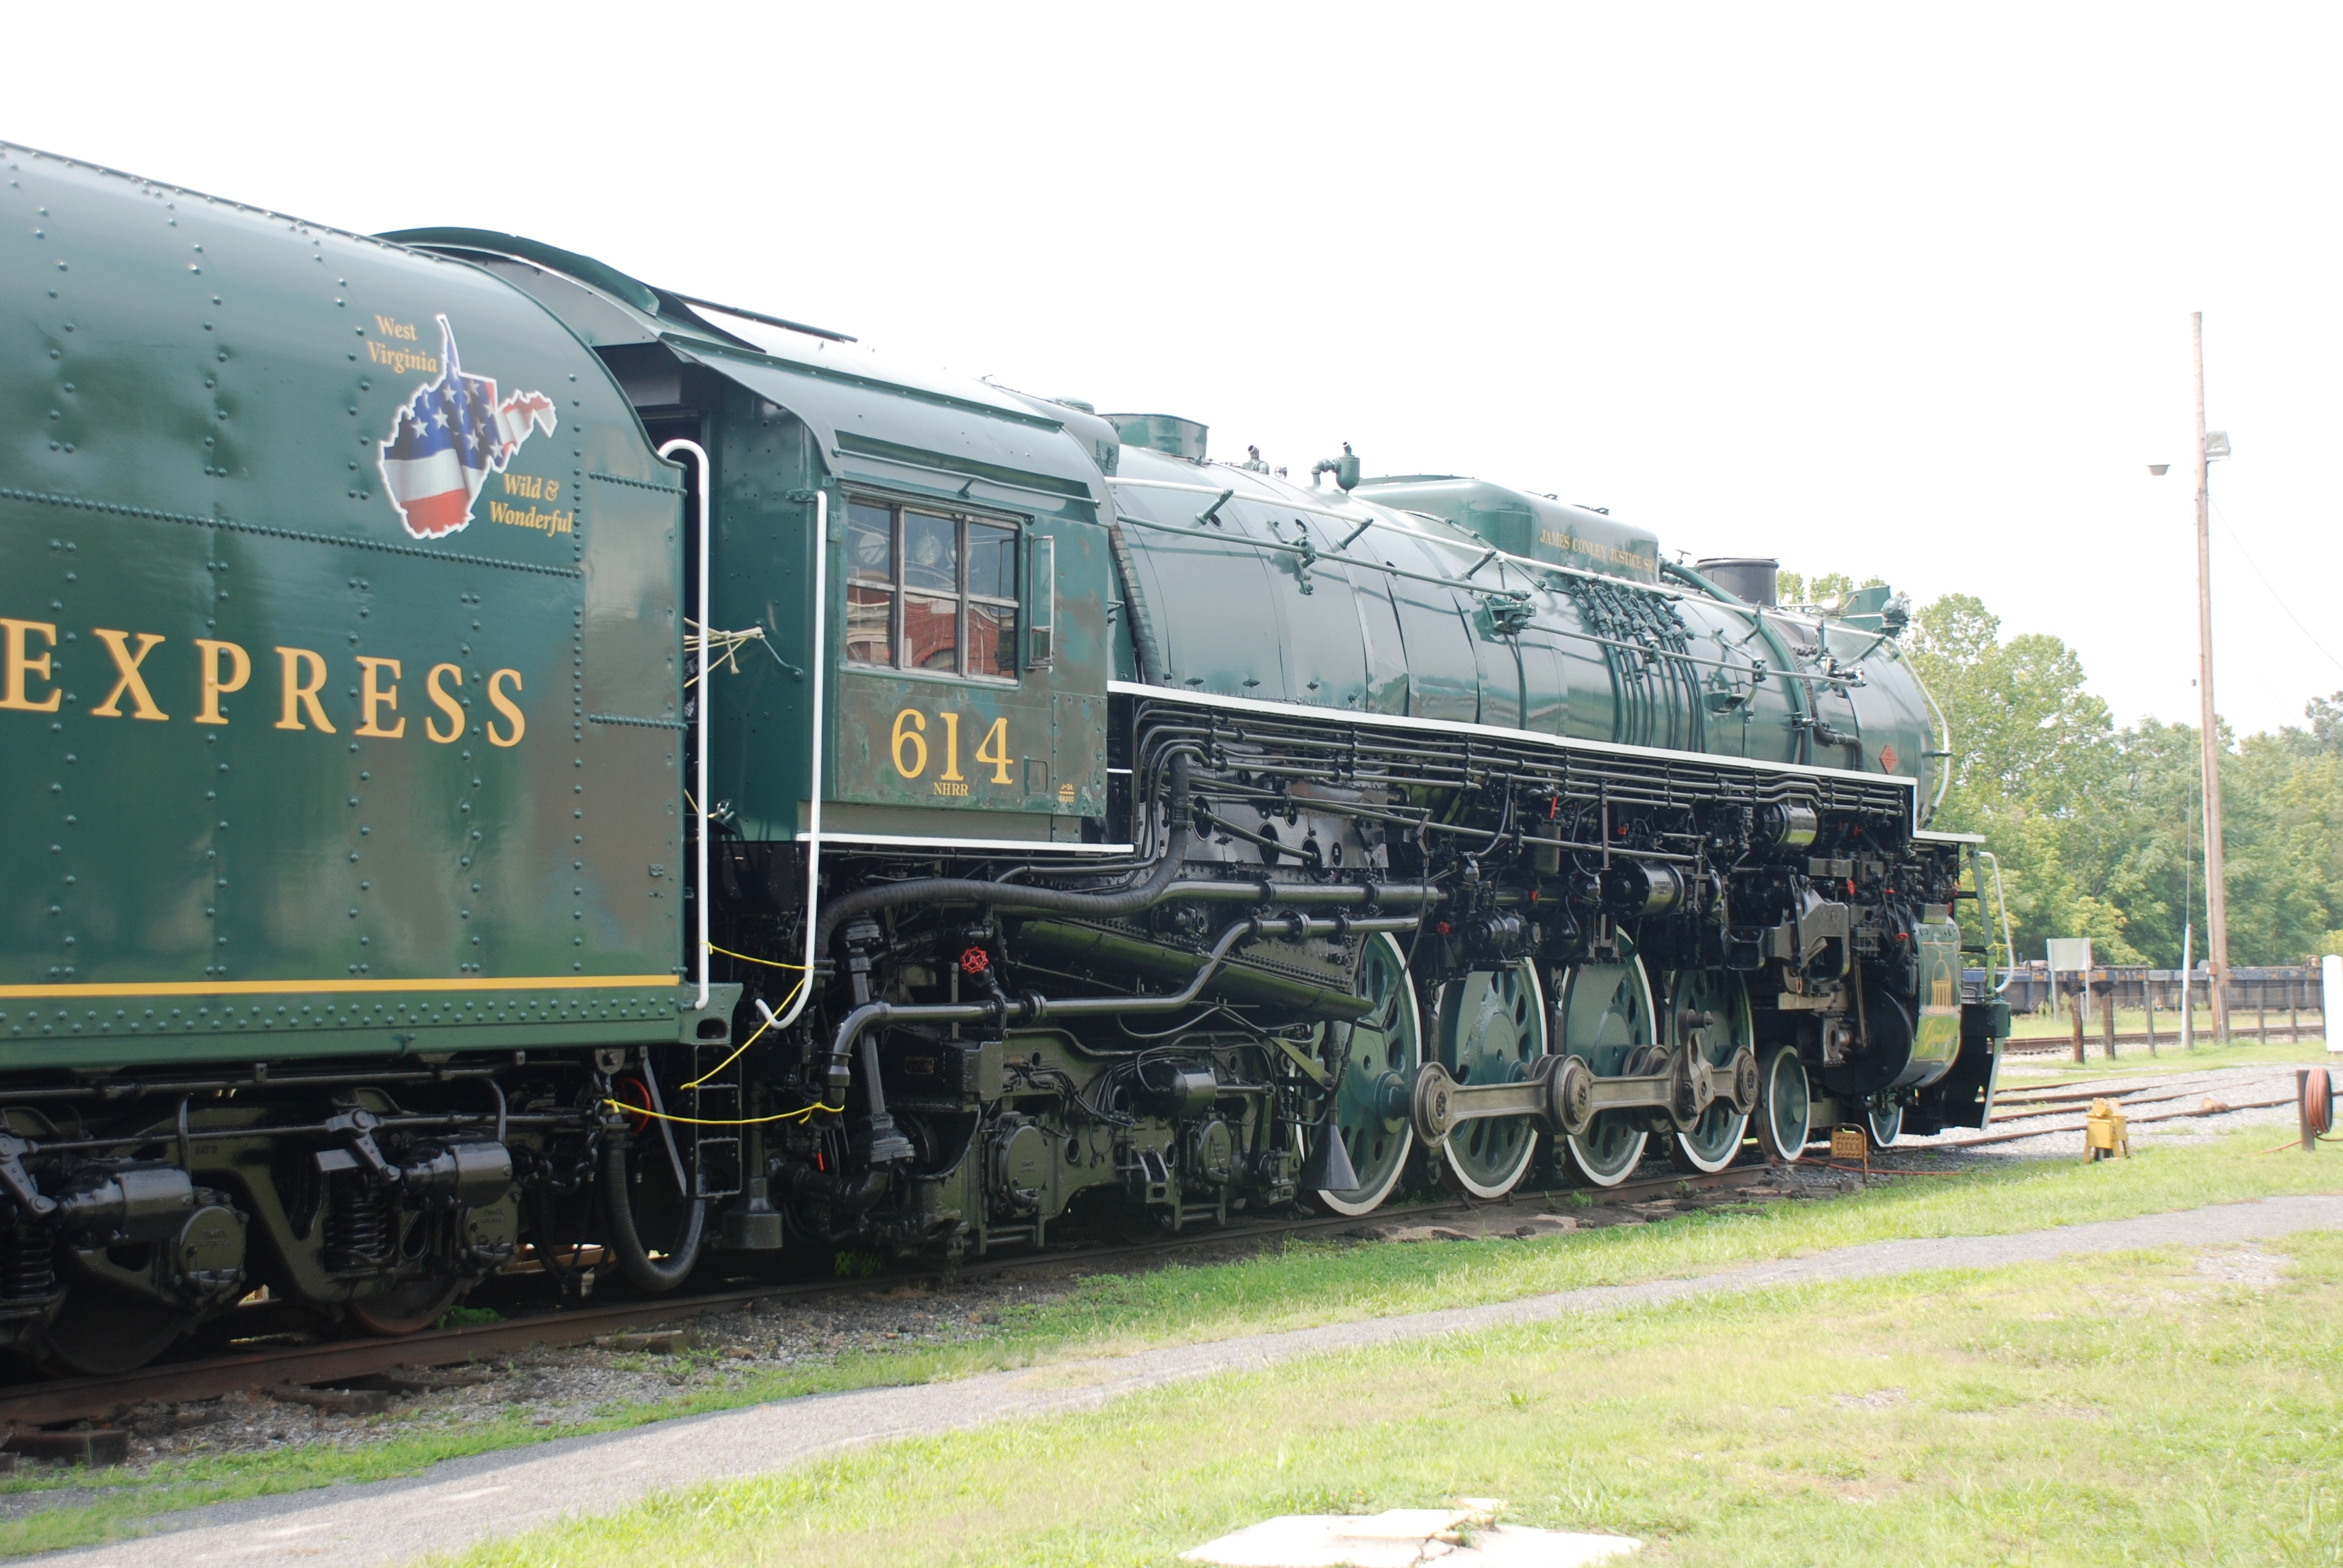 File:C&O Railway Heritage Center - C&O 614 Locomotive ...